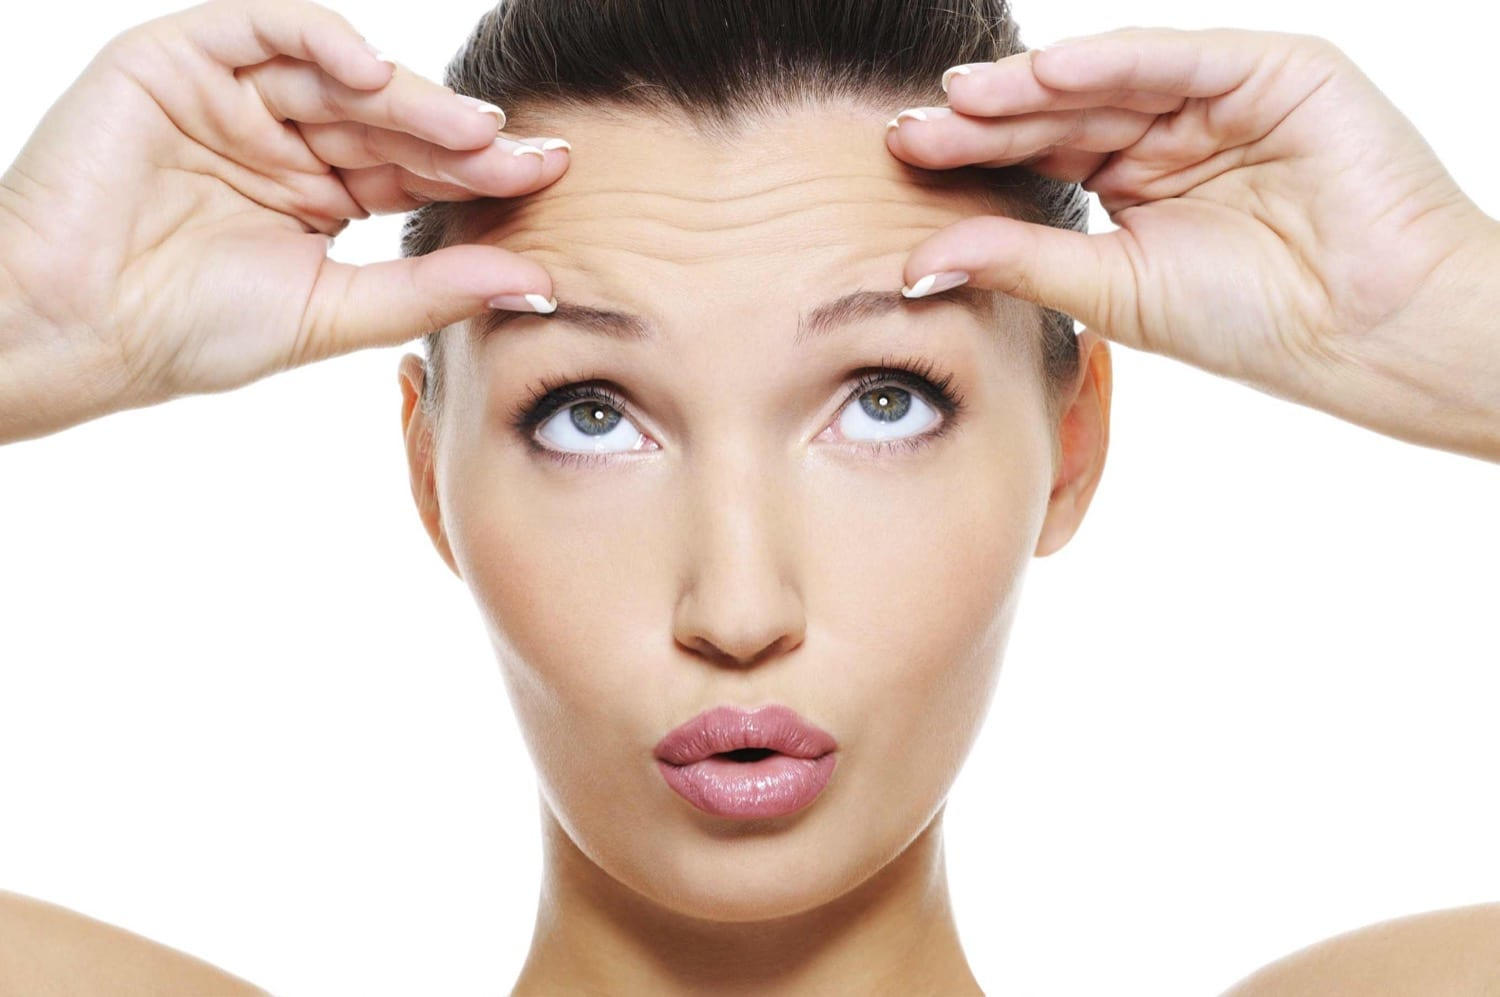 Botox, Juvederm, and Injectable Dermal Fillers - treatments provided by Max Adler Dermatology in Plano TX